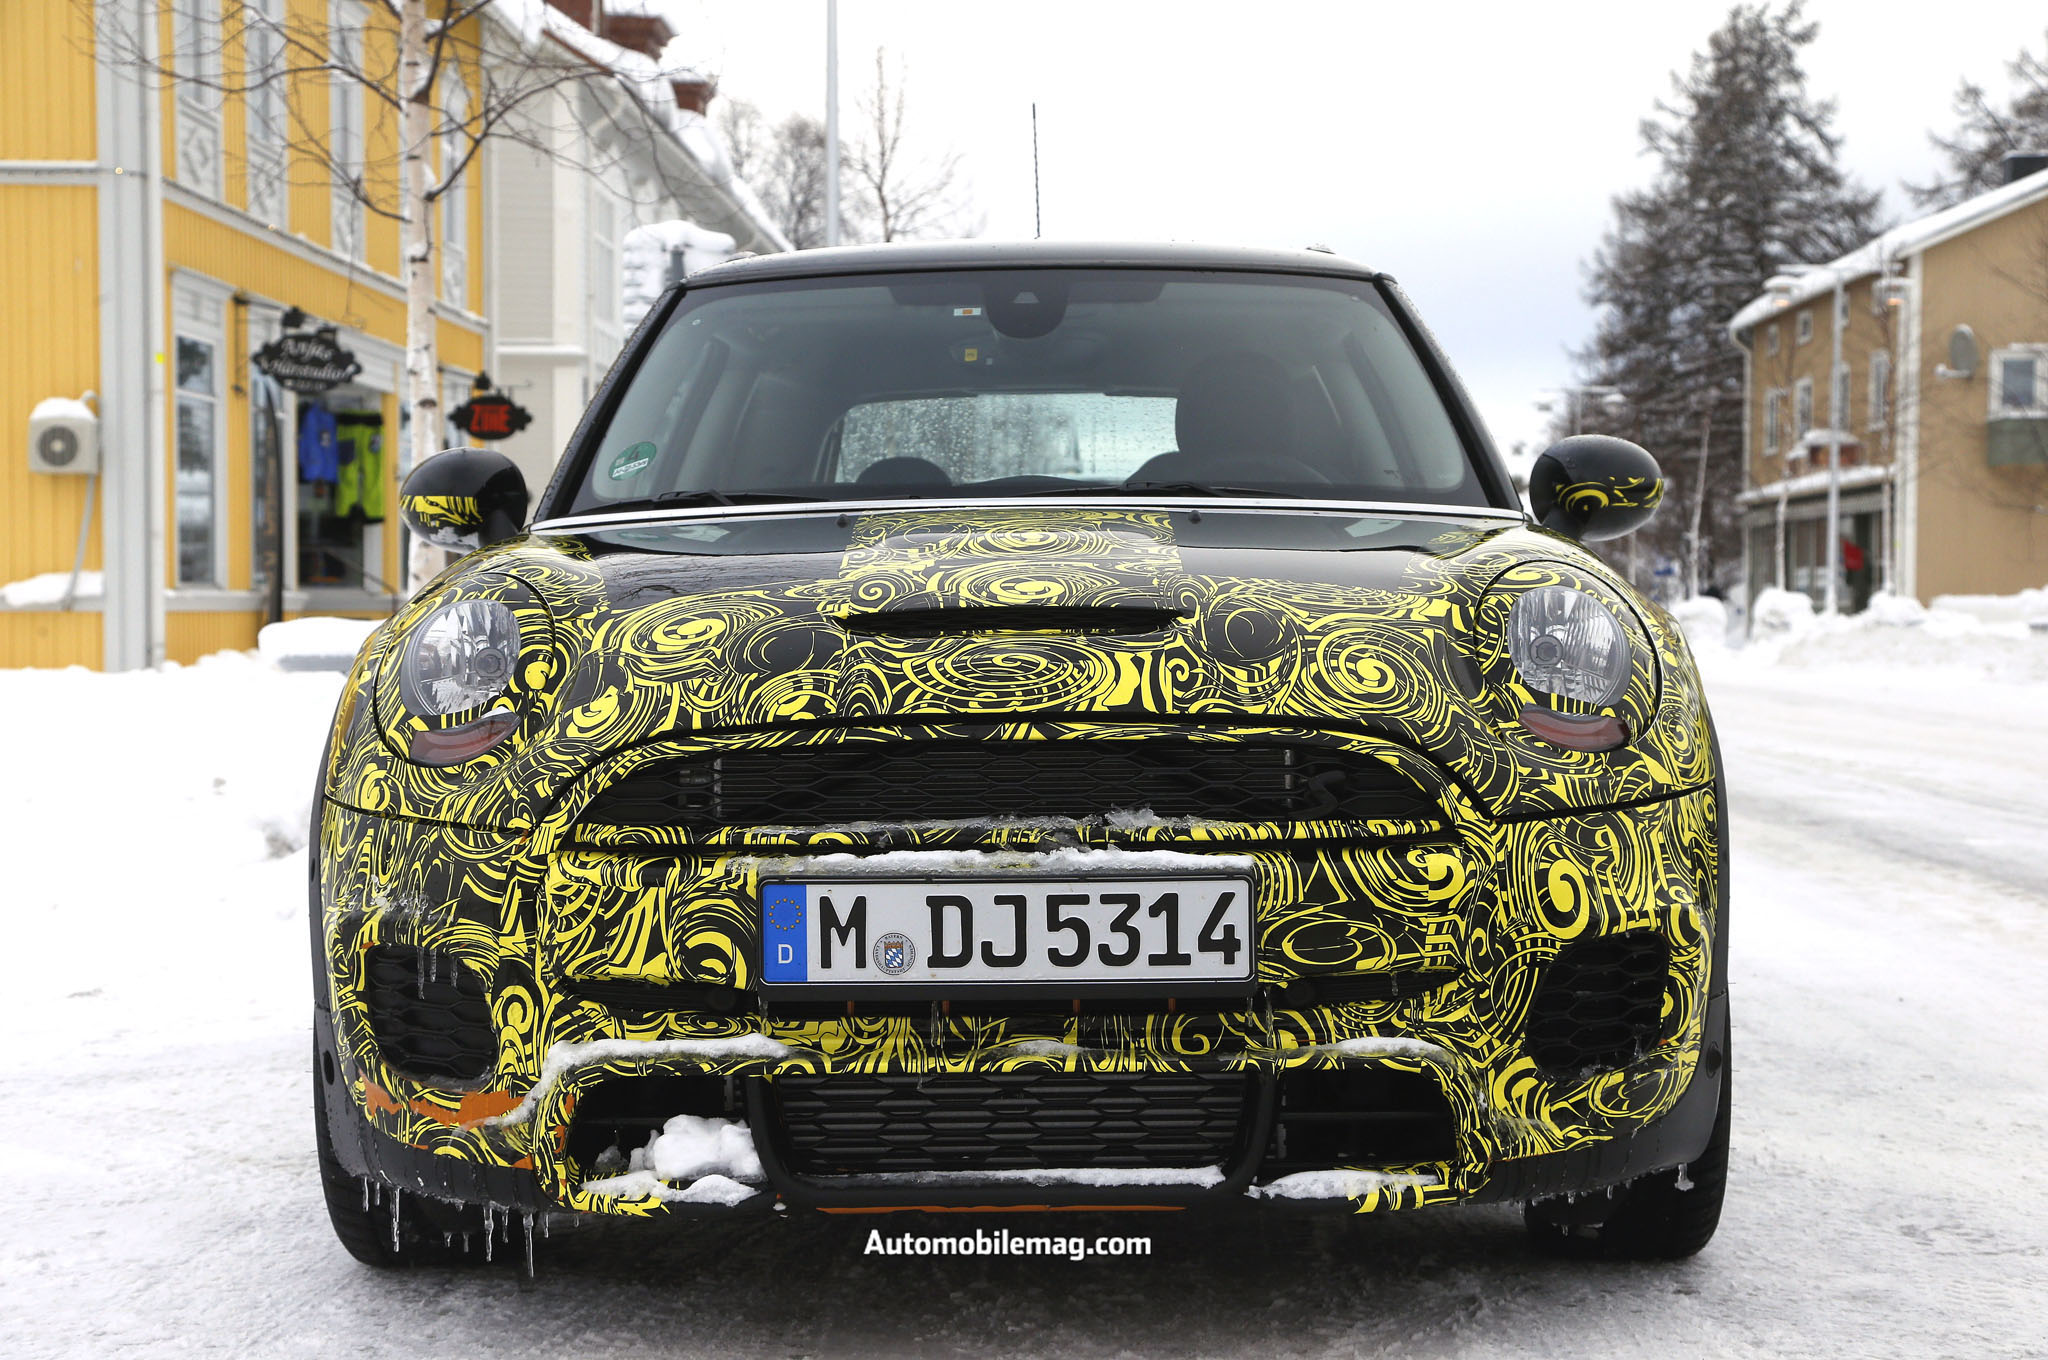 2015 mini cooper jcw spied front report 2015 mini cooper jcw to get 231 hp from new engine